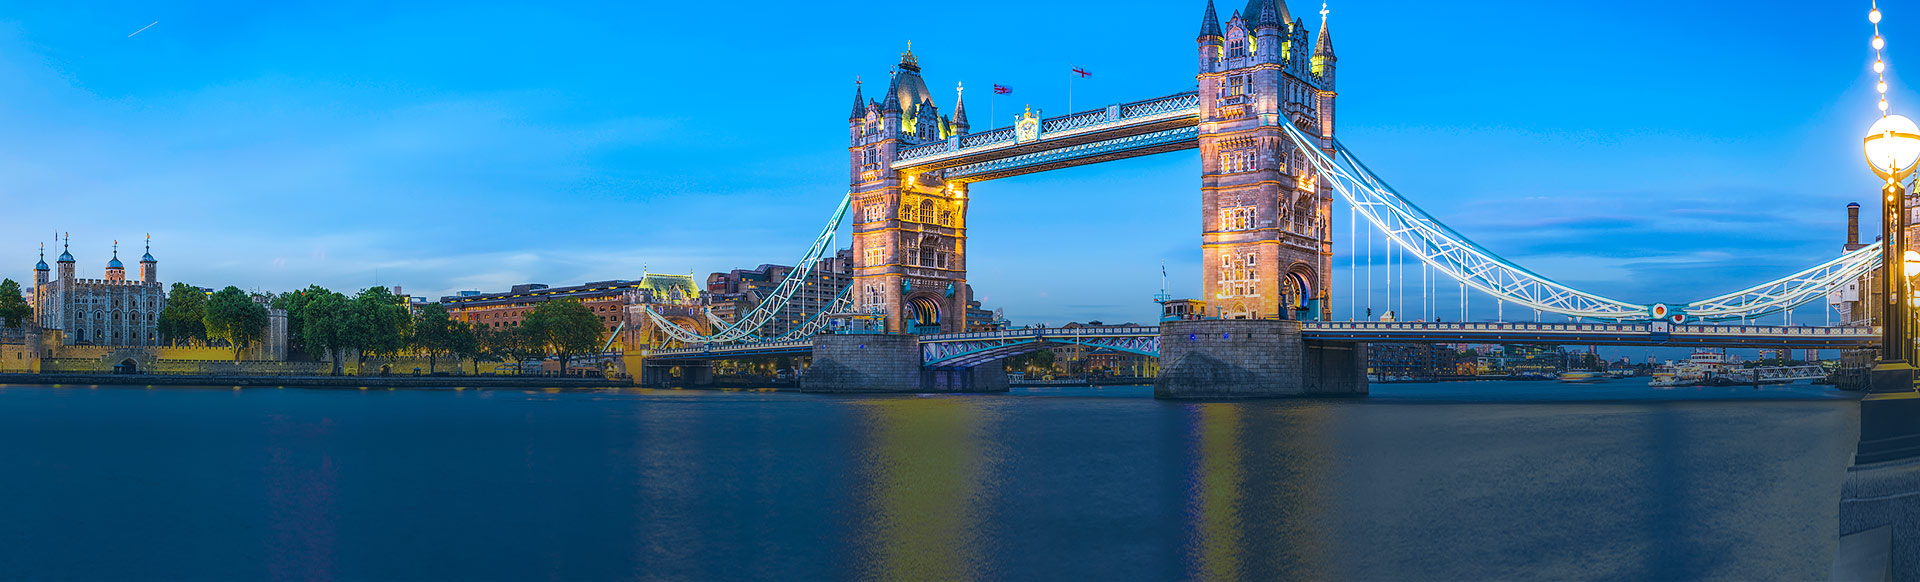 London Attractions Sightseeing Visitlondon Com